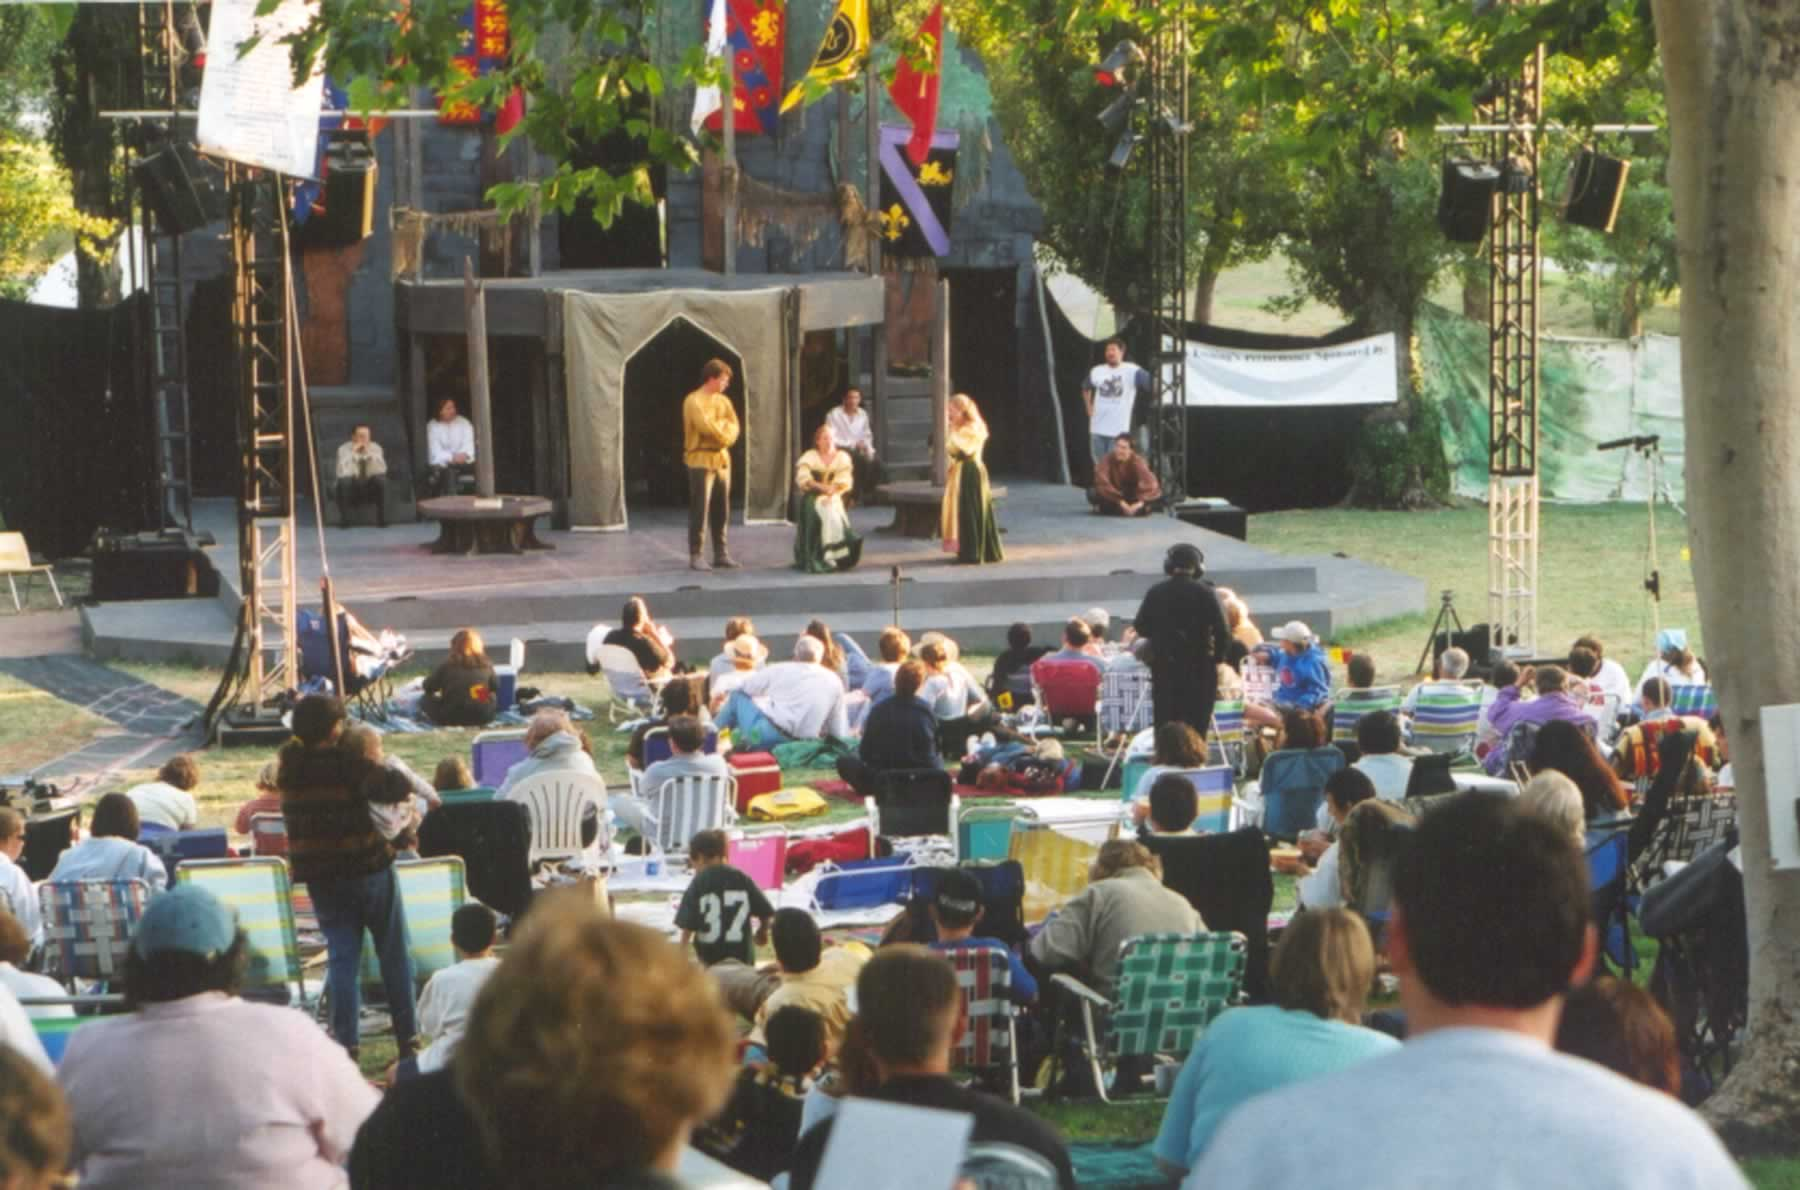 shakespeare festival Utah shakespeare festival, cedar city, ut 14k likes the utah shakespeare festival presents life-affirming classic and contemporary plays in repertory.